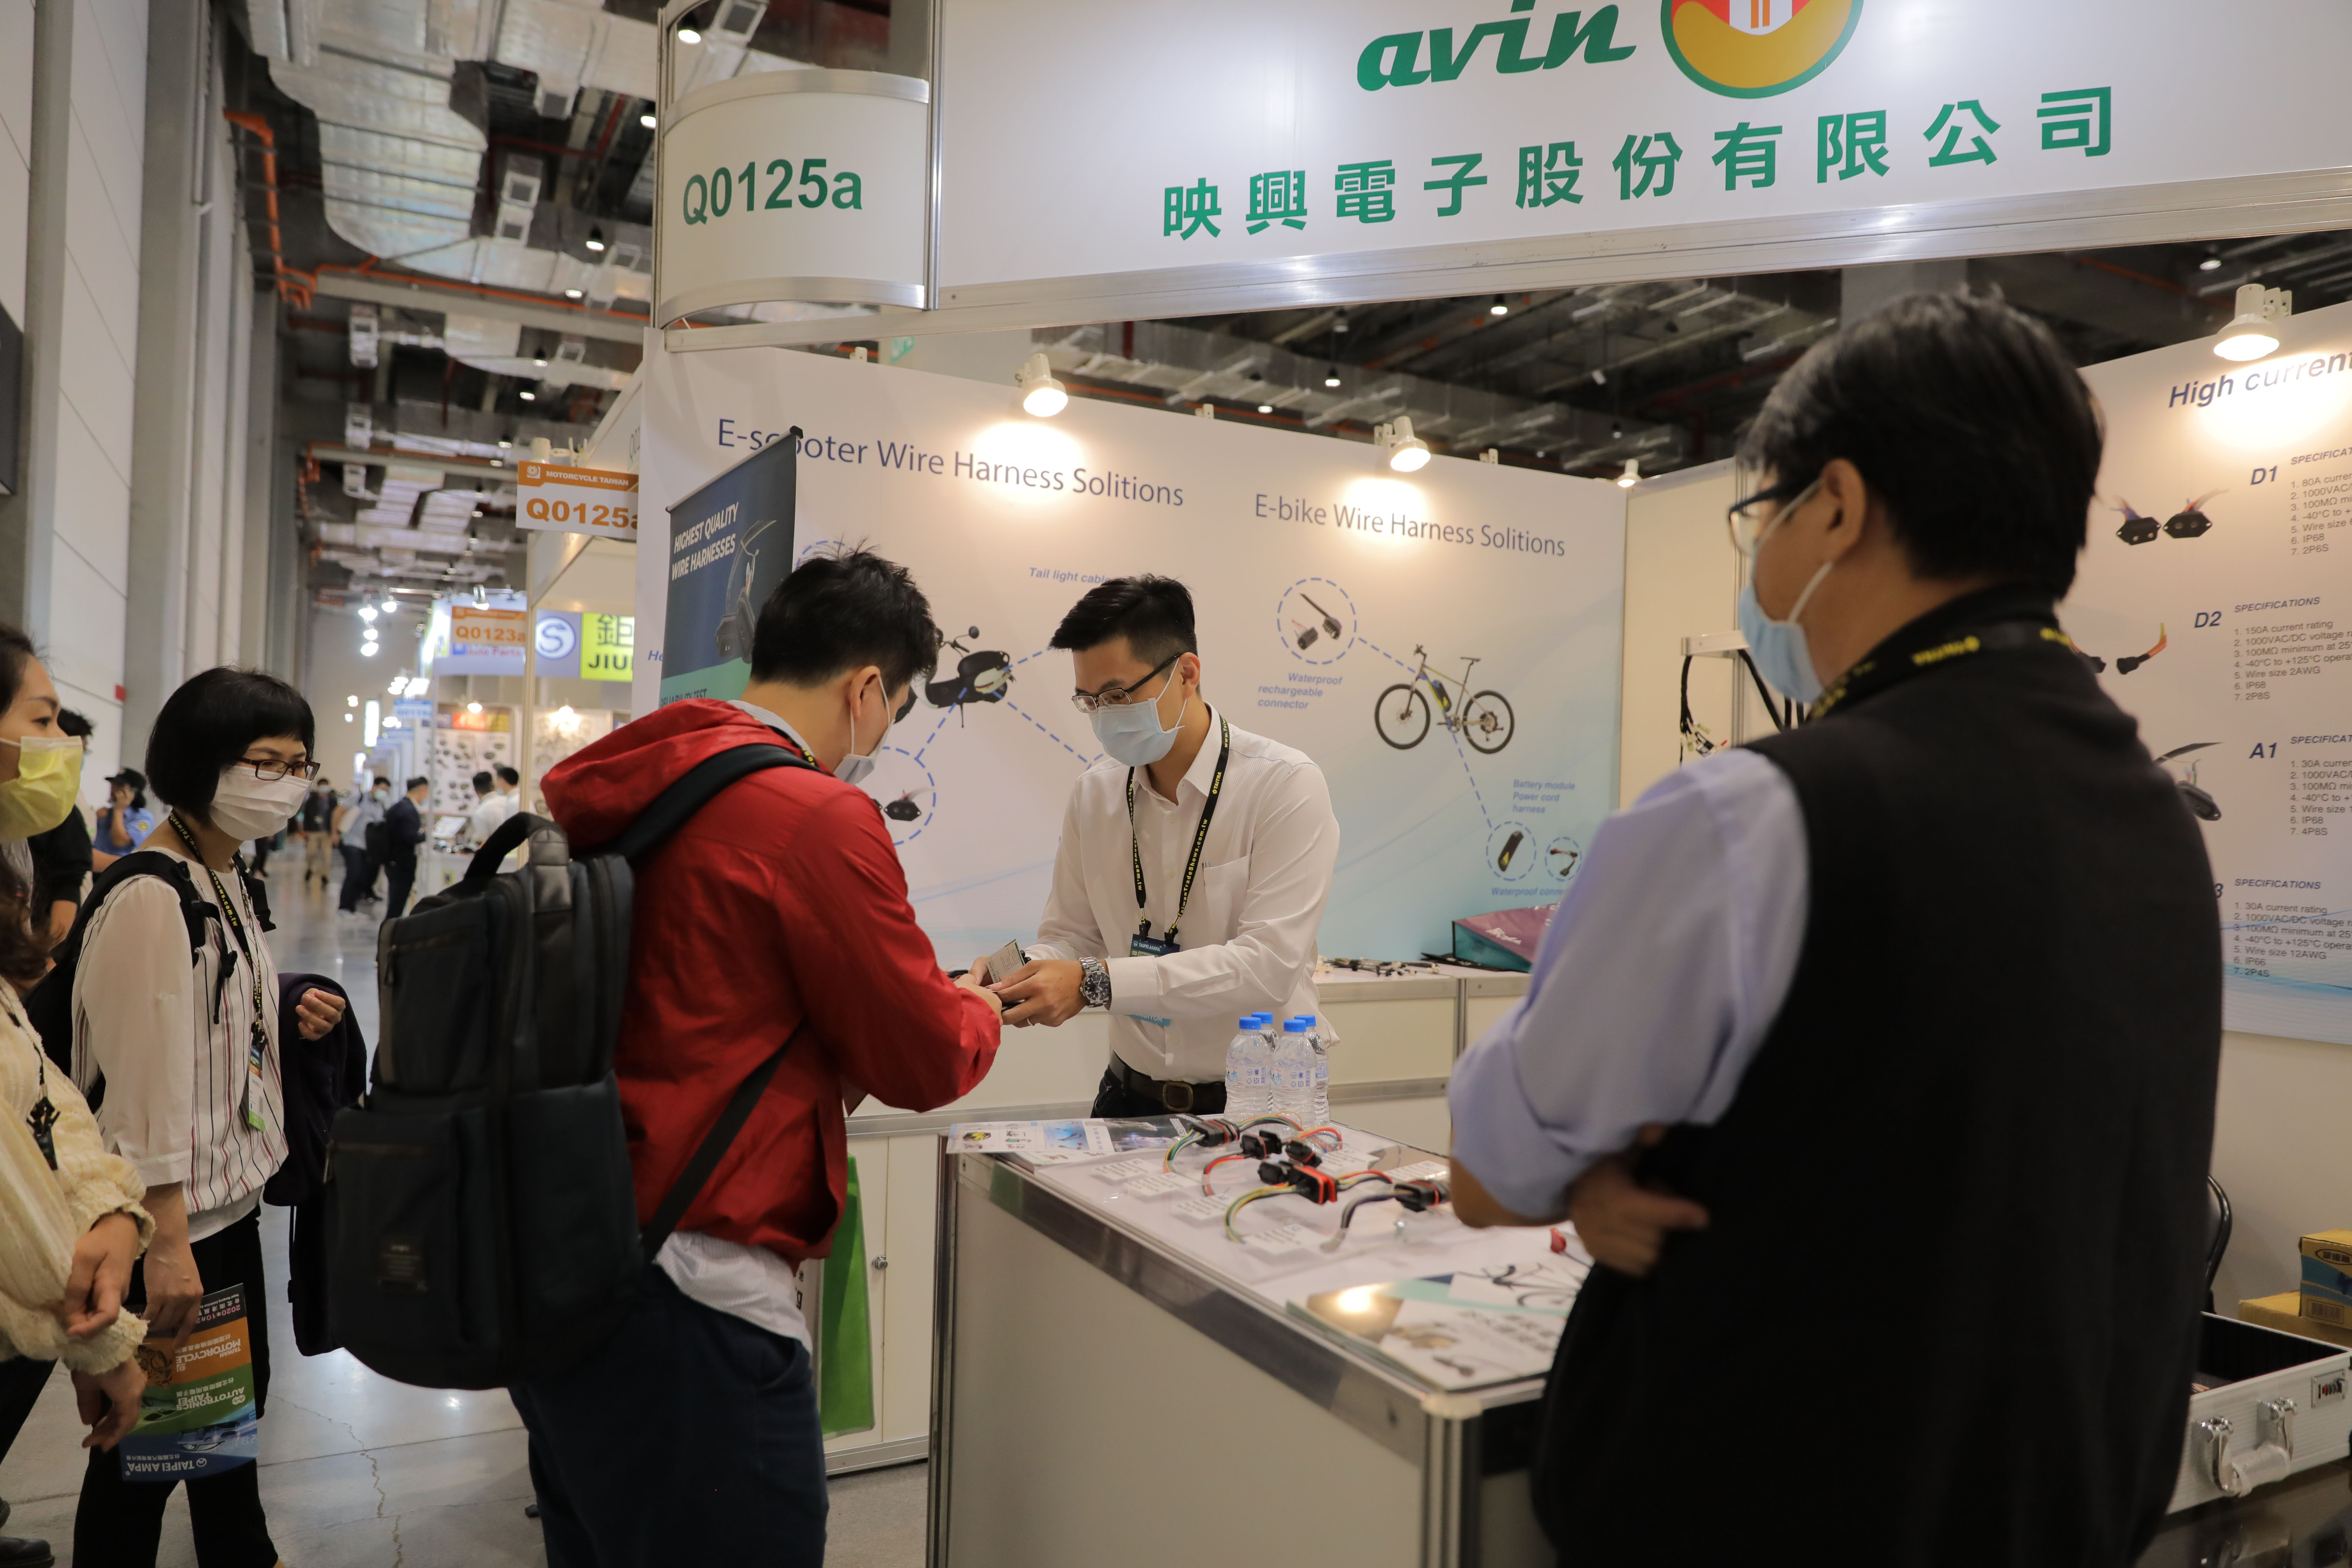 https://storage.googleapis.com/www.taiwantradeshow.com.tw/activity-photo/202010/T-11906135-name.jpg